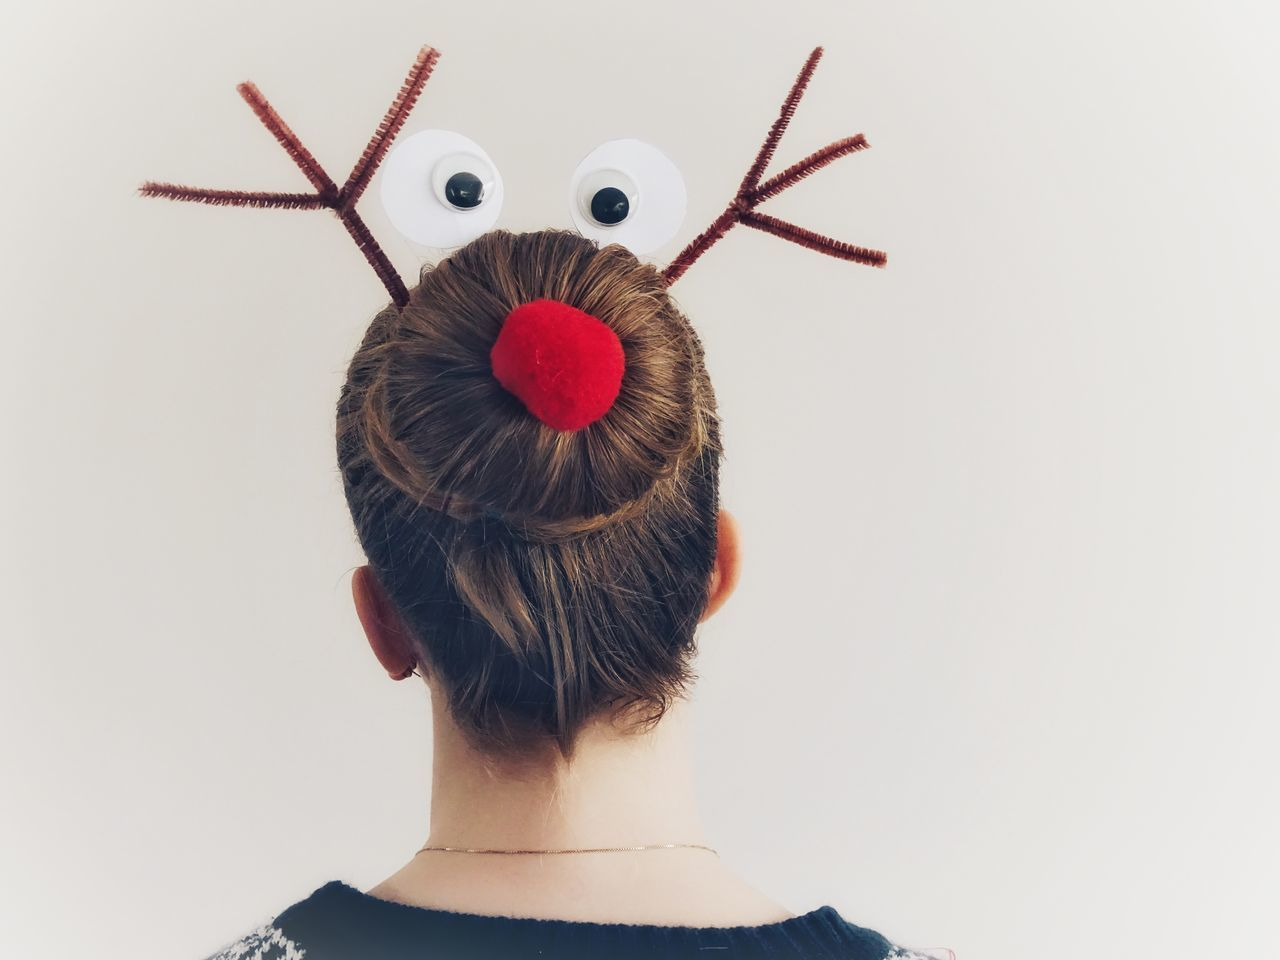 Funny Hairstyle Funny Hair Hairstyles Hair Bun Bun One Person Rear View Real People Headshot White Background Studio Shot Women Indoors  Close-up Day People Hairdo Red Nose Christmas Blond Hair Stylish Hairstyle Hair Reindeer Rudolph